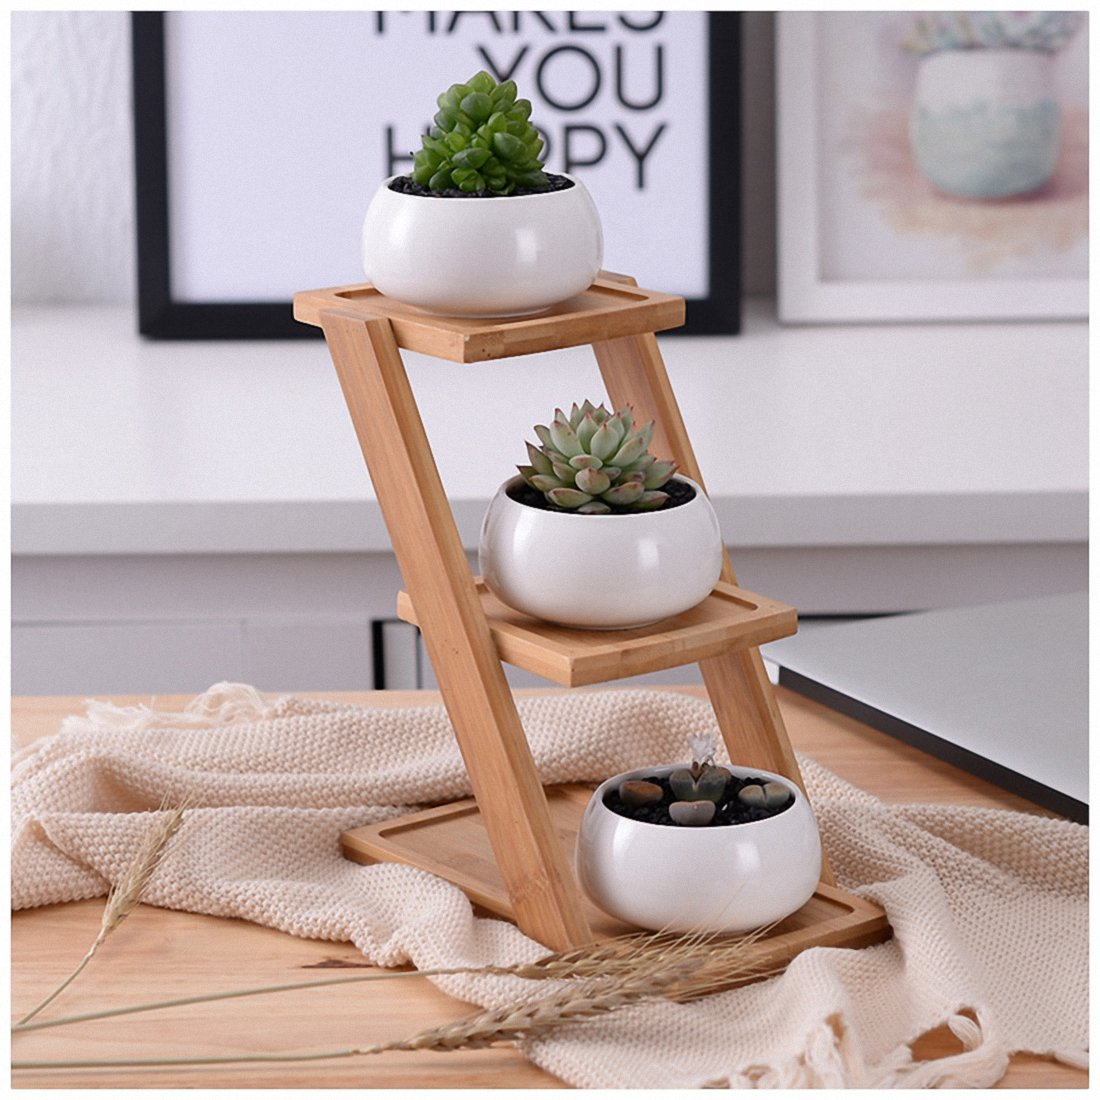 SODIAL Decorative Small Round Succulent Plant Pot 3 Tier Bamboo Stand-Window Display-Home Decoration (White)